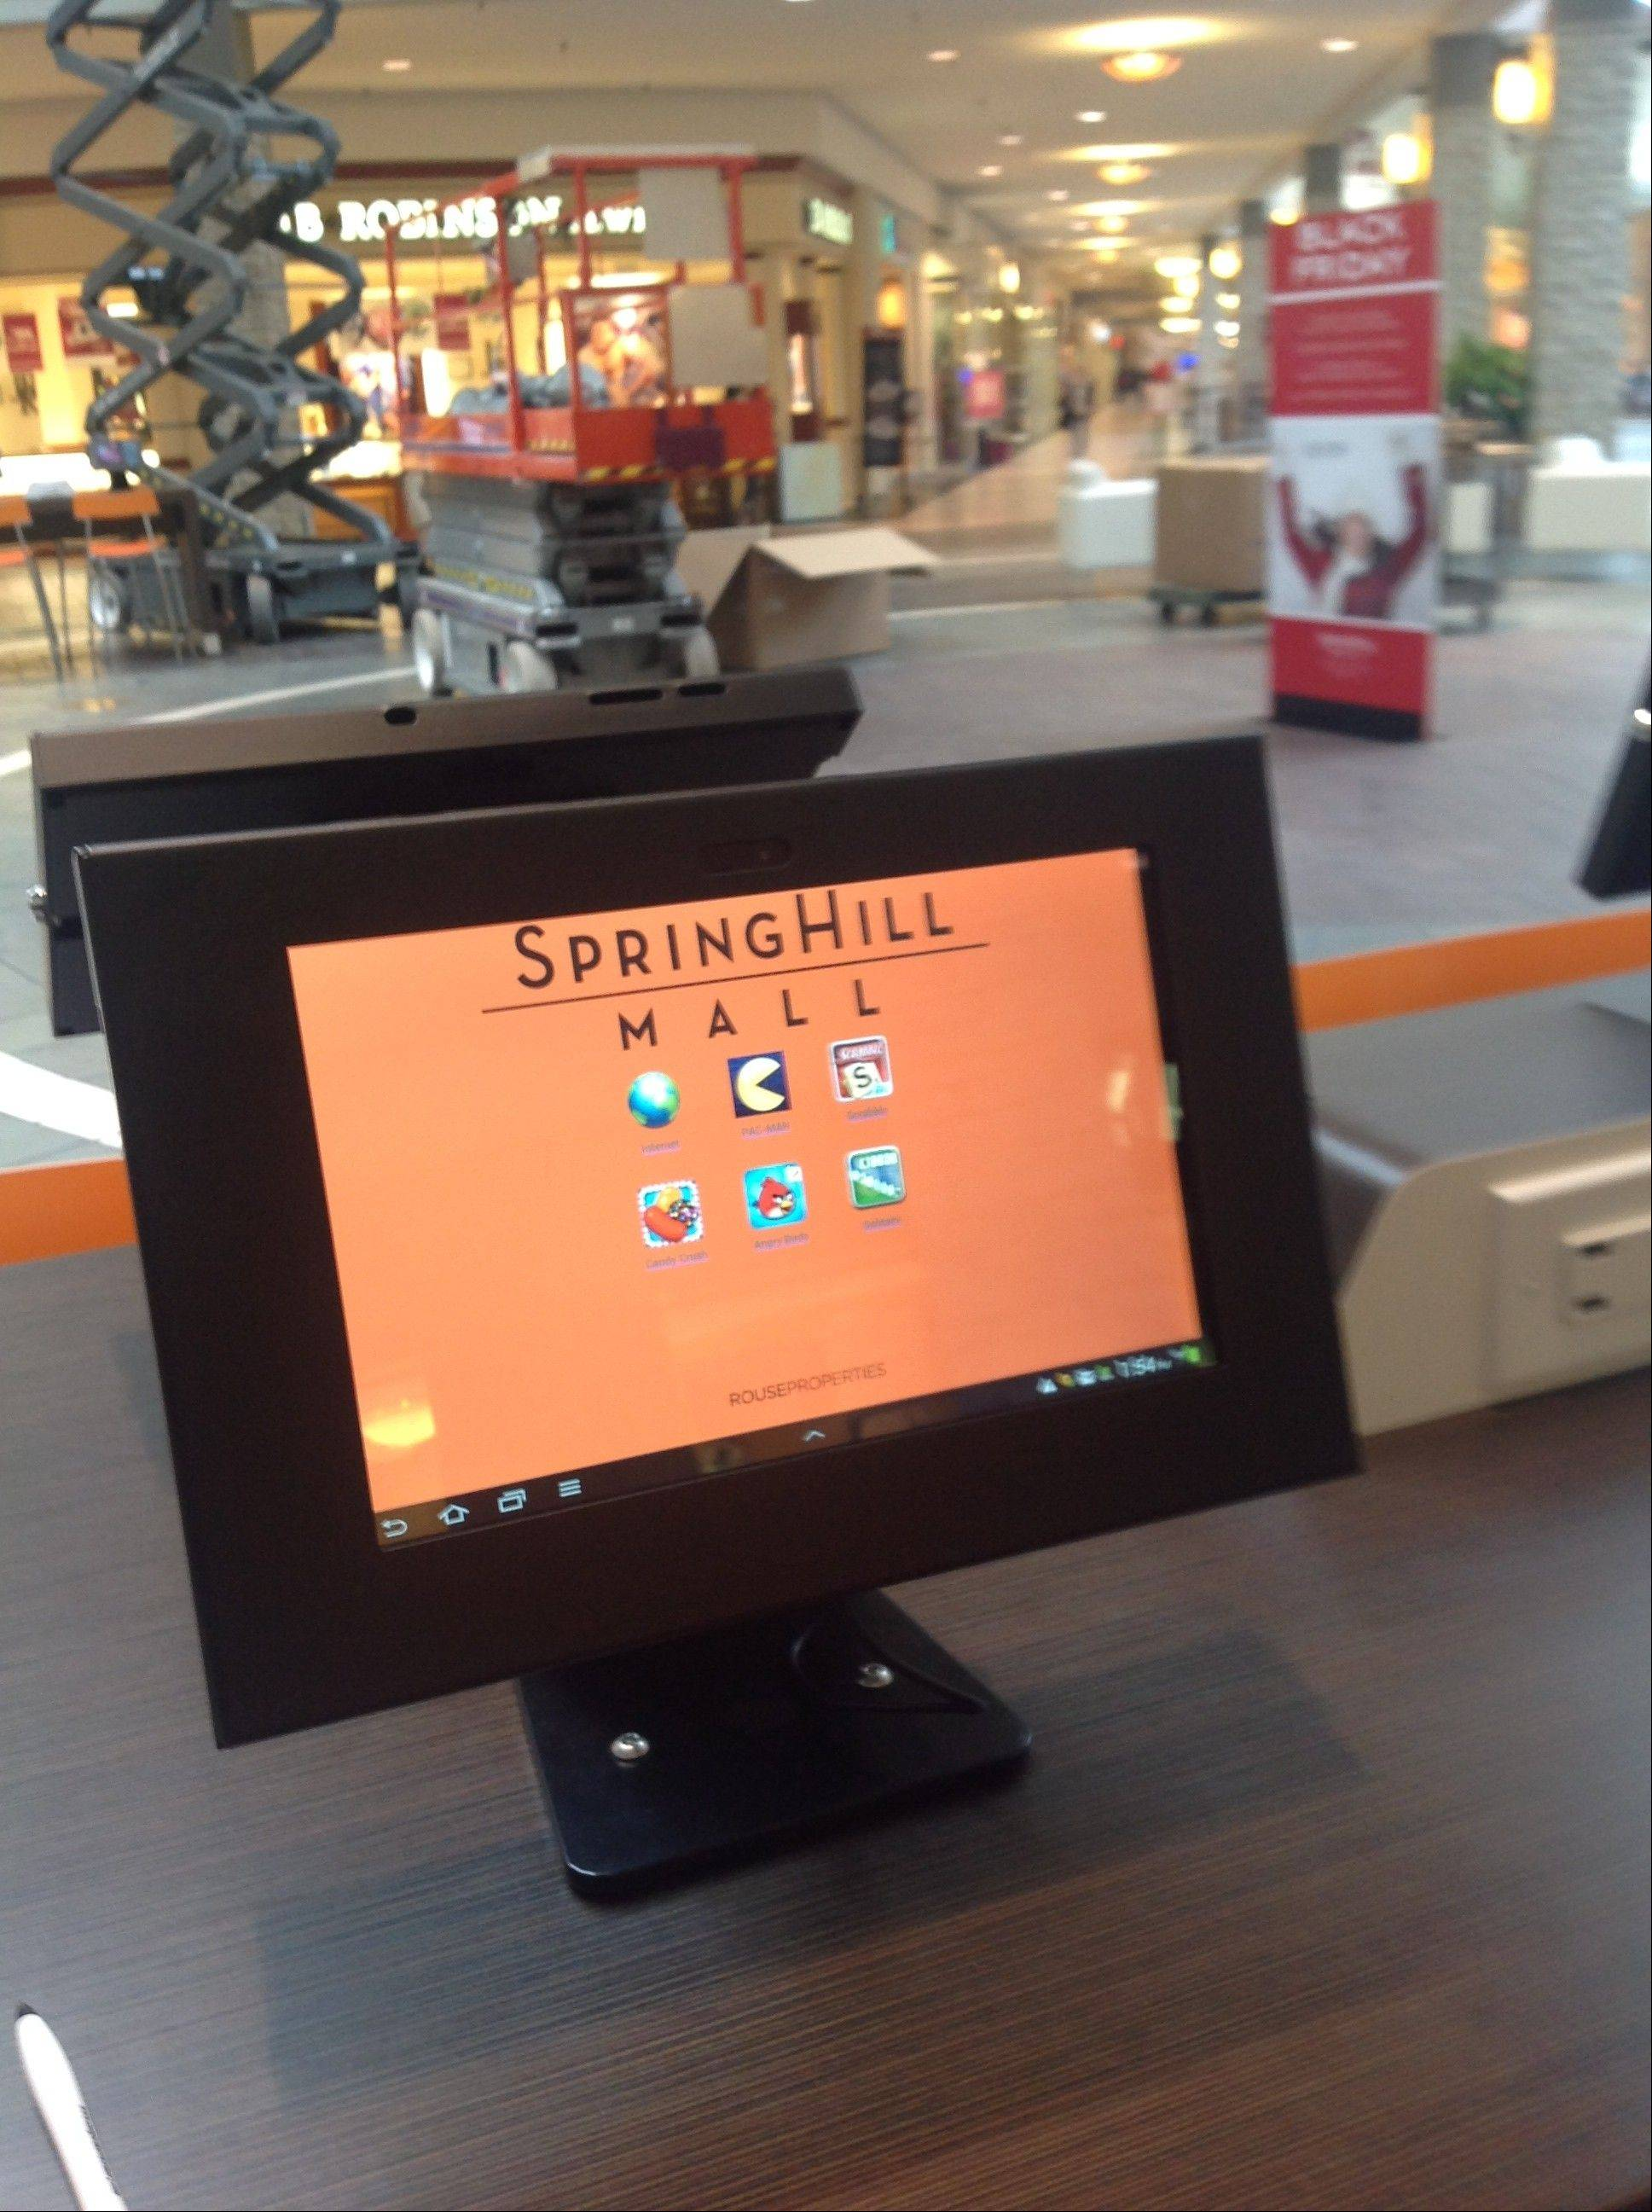 Spring Hill Mall will soon house a Nestl� Toll House Caf�. It will serve gourmet coffee, fresh baked cookies, pastries and premium sandwiches and paninis from the mall's center court. The center court already offers free tablets, like the one shown here. The caf� is expected to open in January.